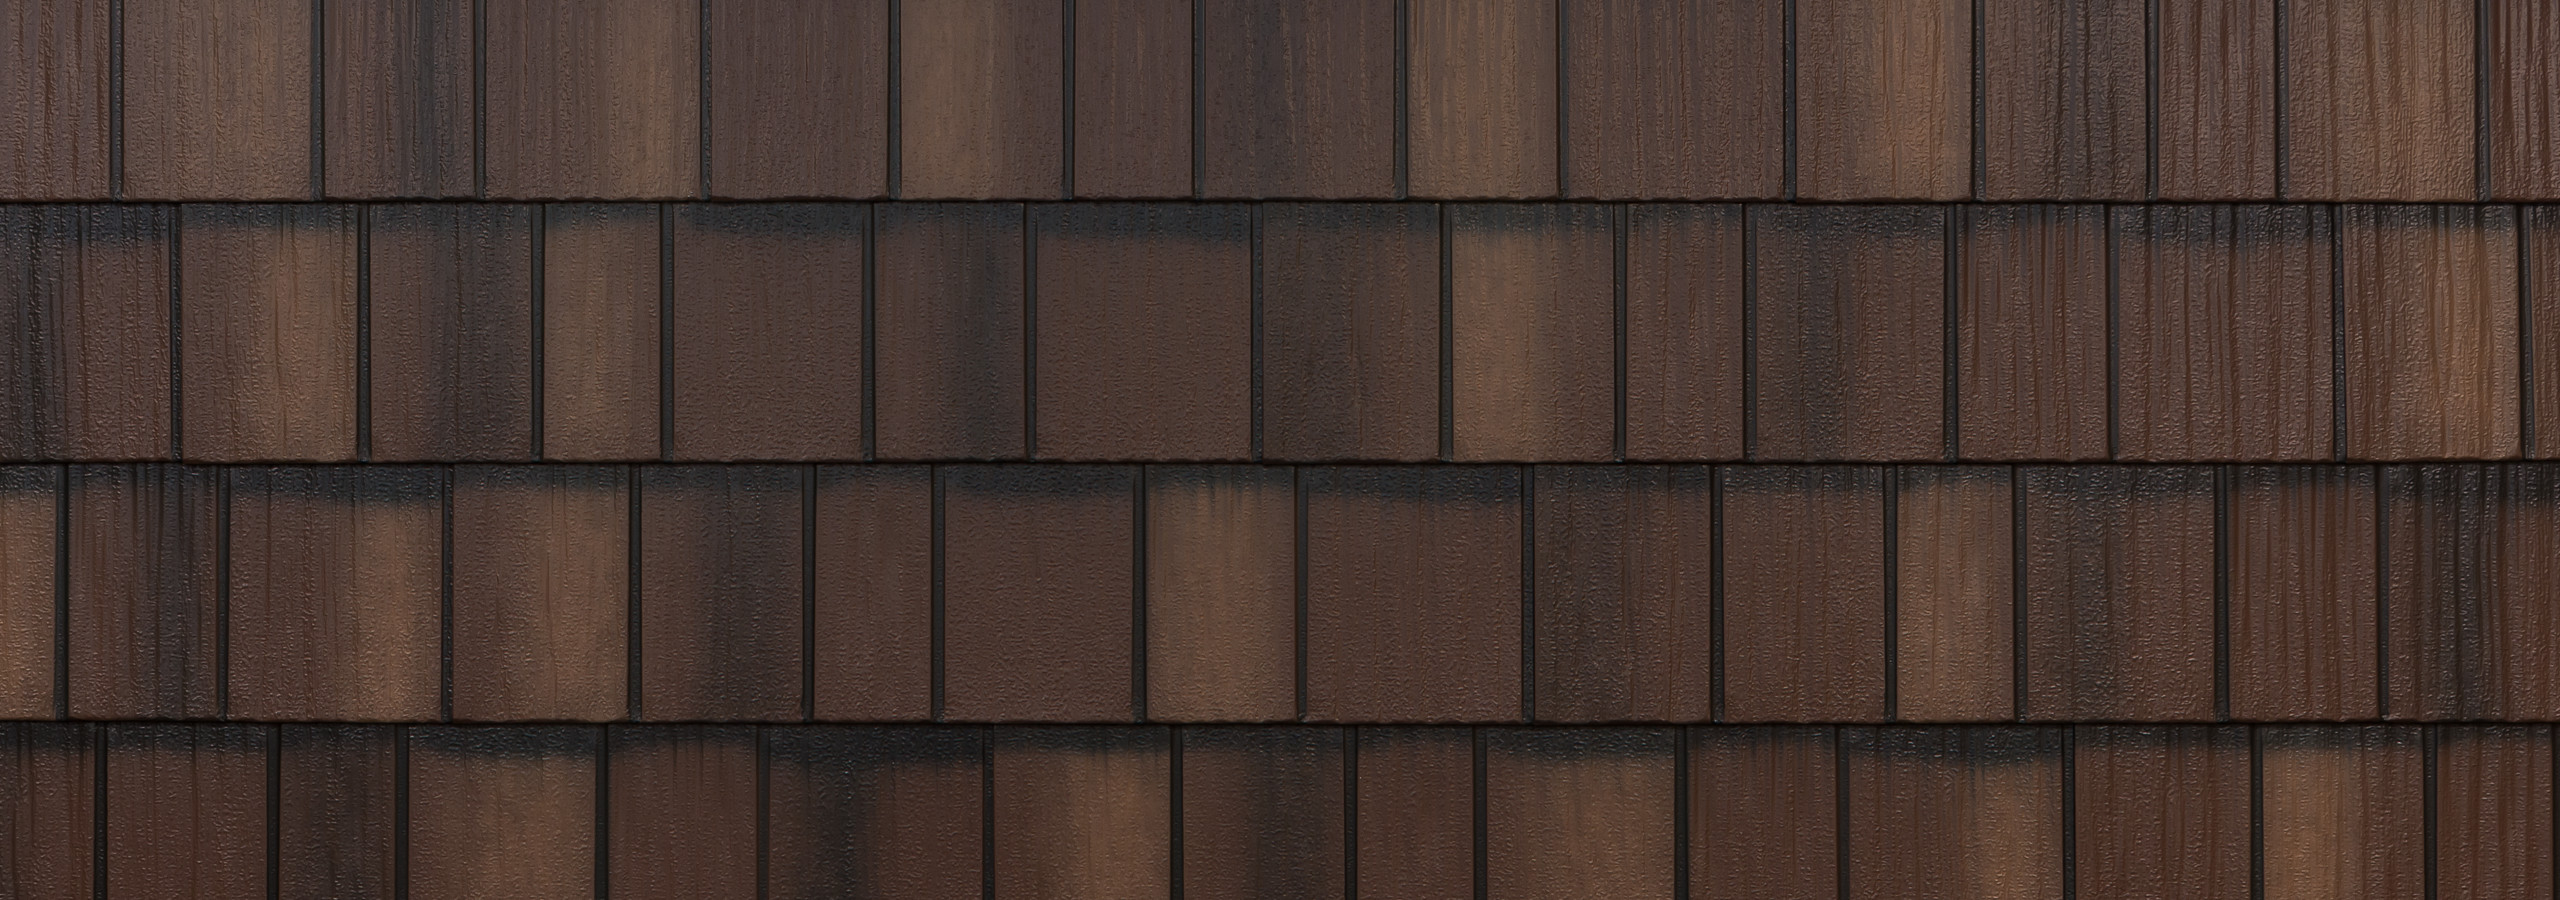 Arrowline shake royal brown steel siding